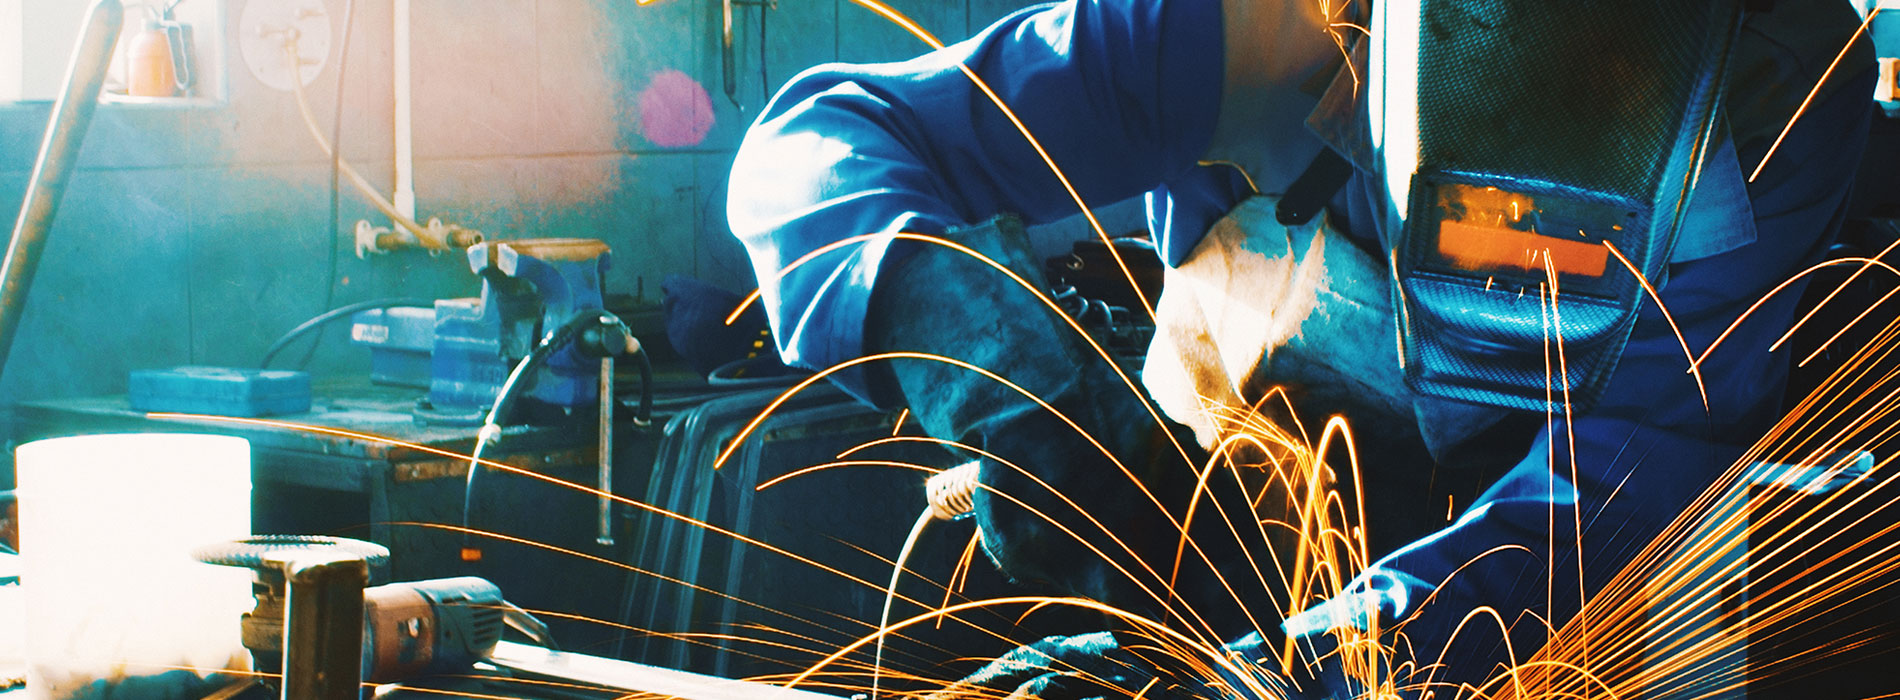 Worker in suit with sparks flying